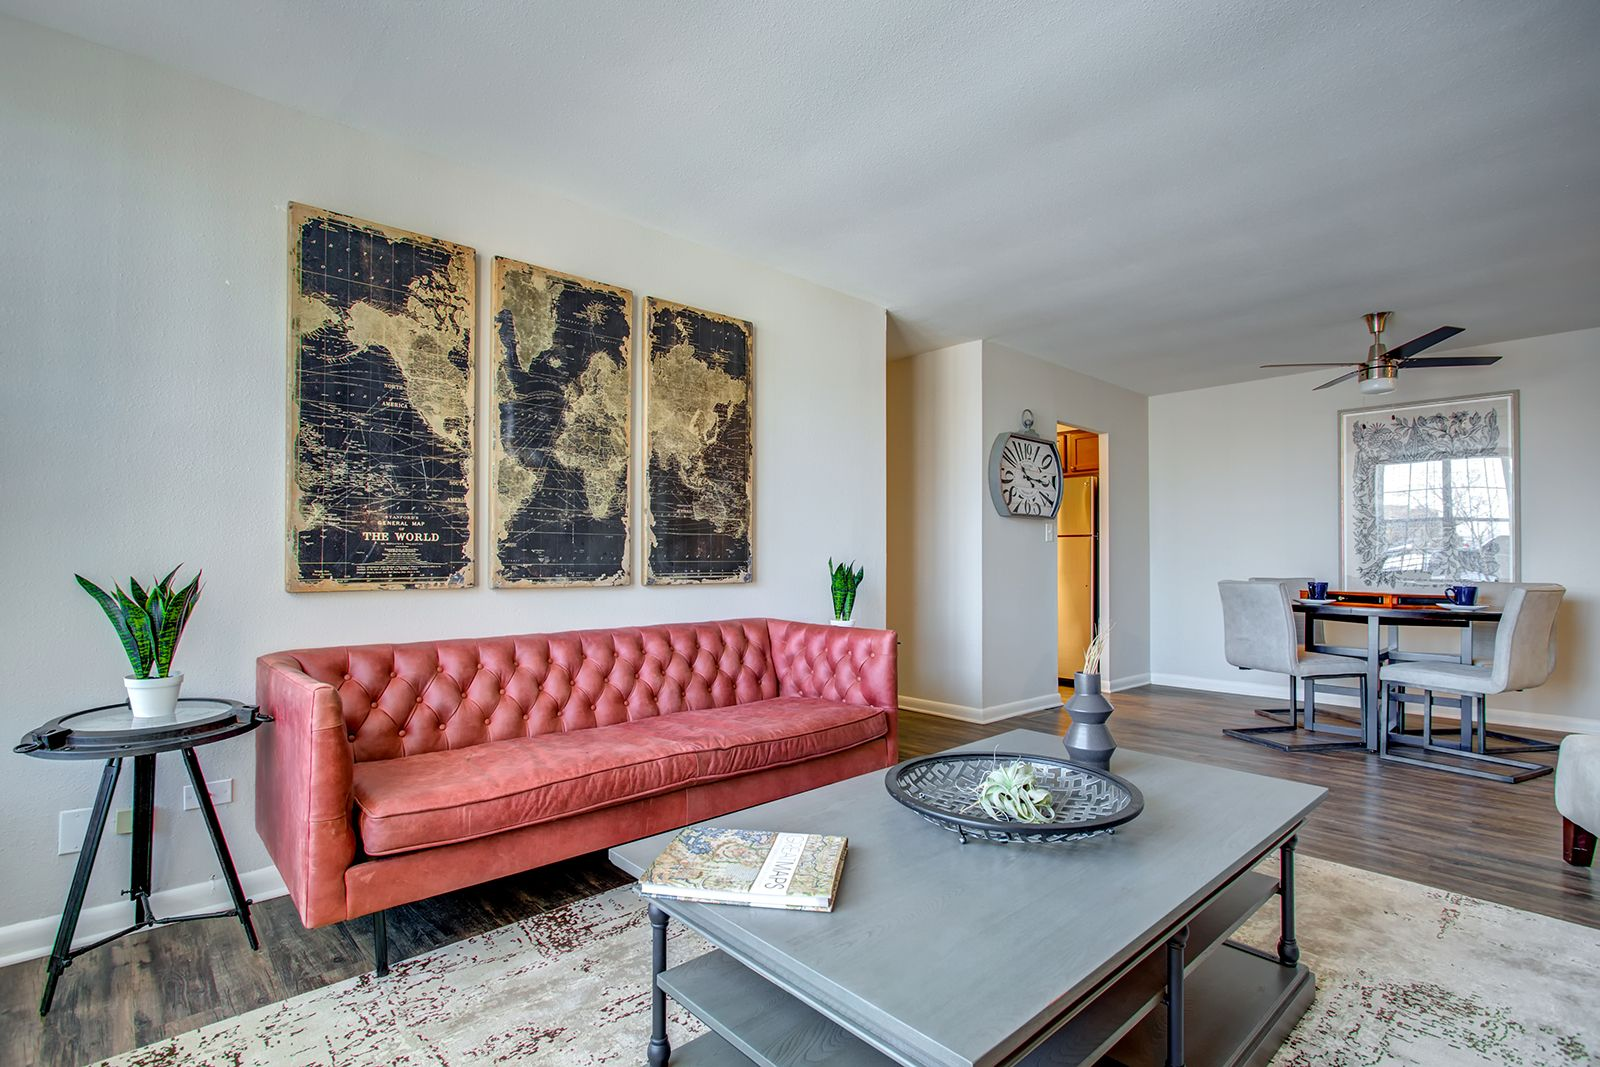 You will love coming home to your luxury living room and